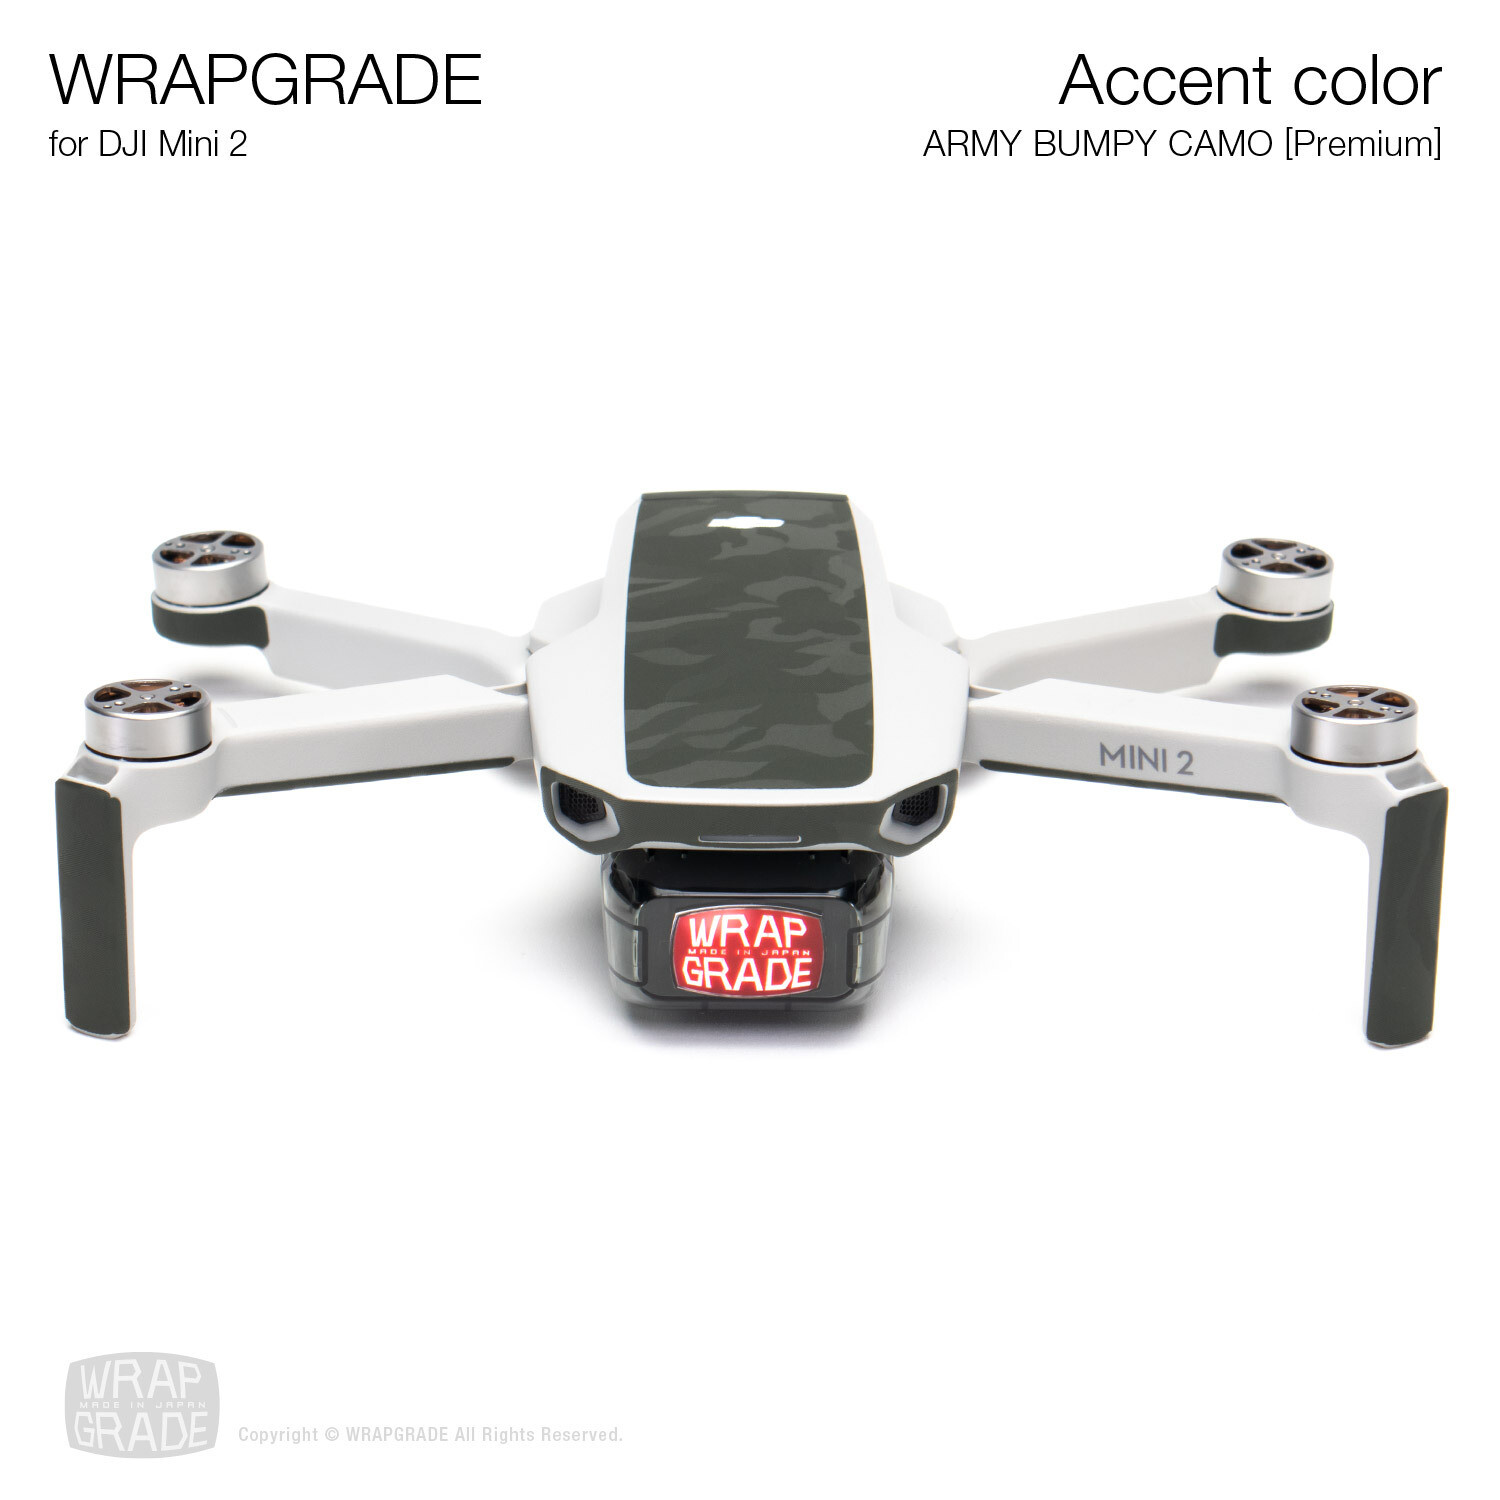 Wrapgrade Poly Skin for DJI Mini 2 | Accent color (ARMY BUMPY CAMO)